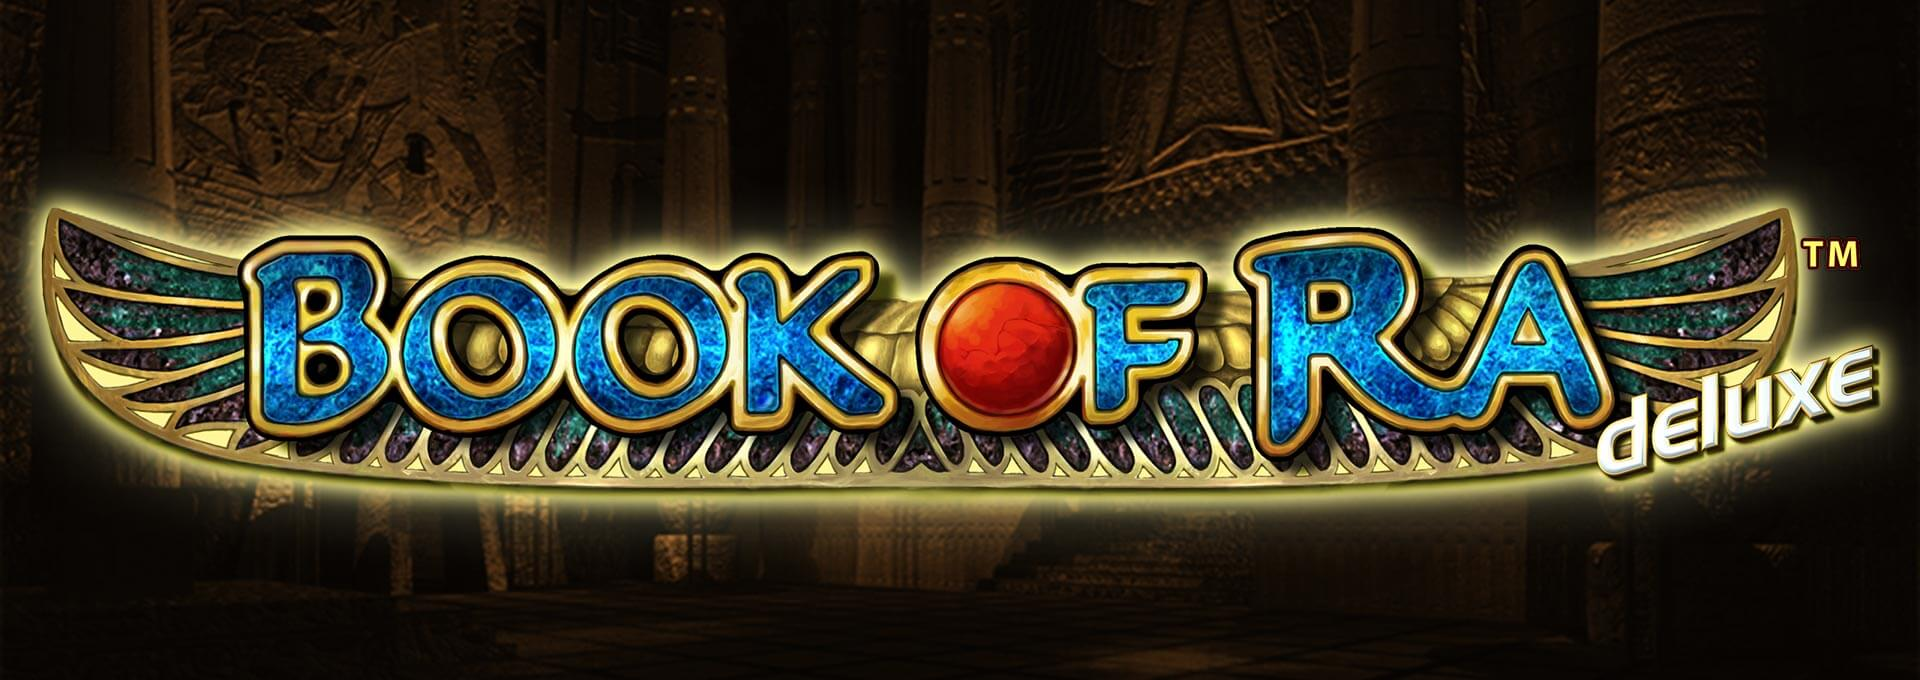 online gambling casino casino spiele book of ra